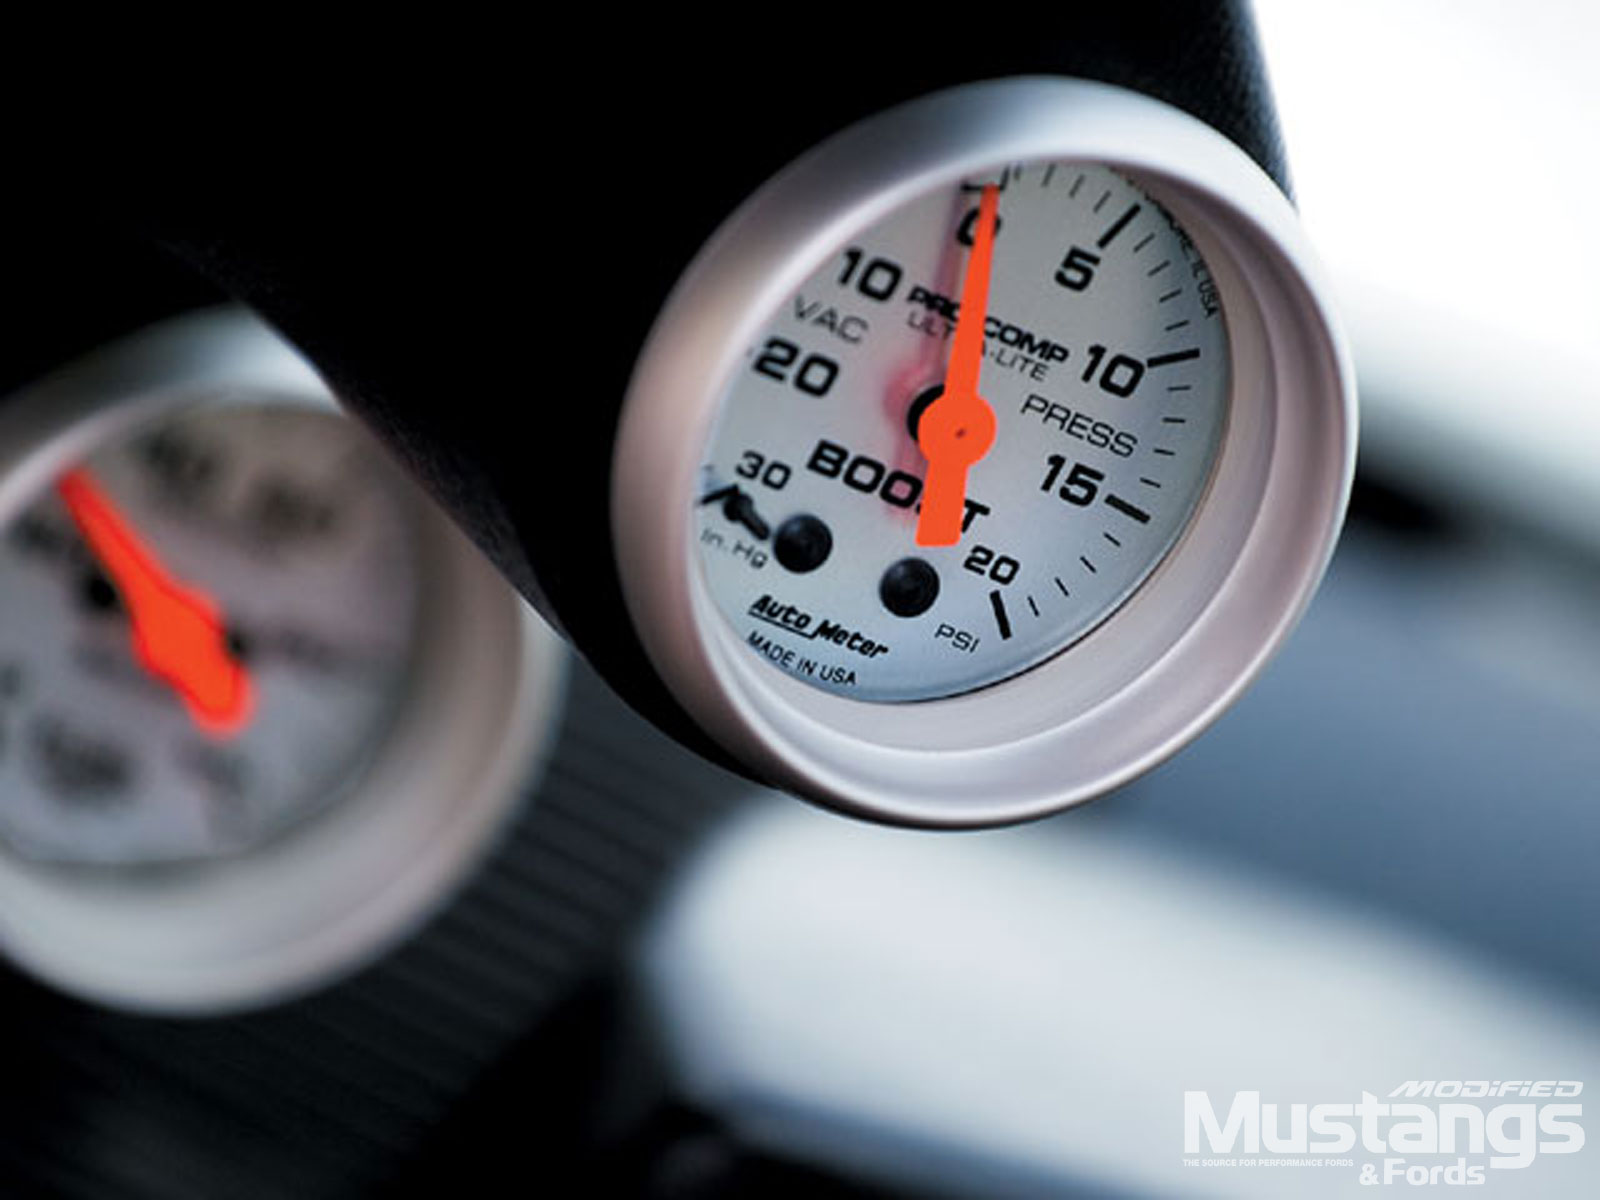 1991 Ford Mustang Lx Turbo Meter